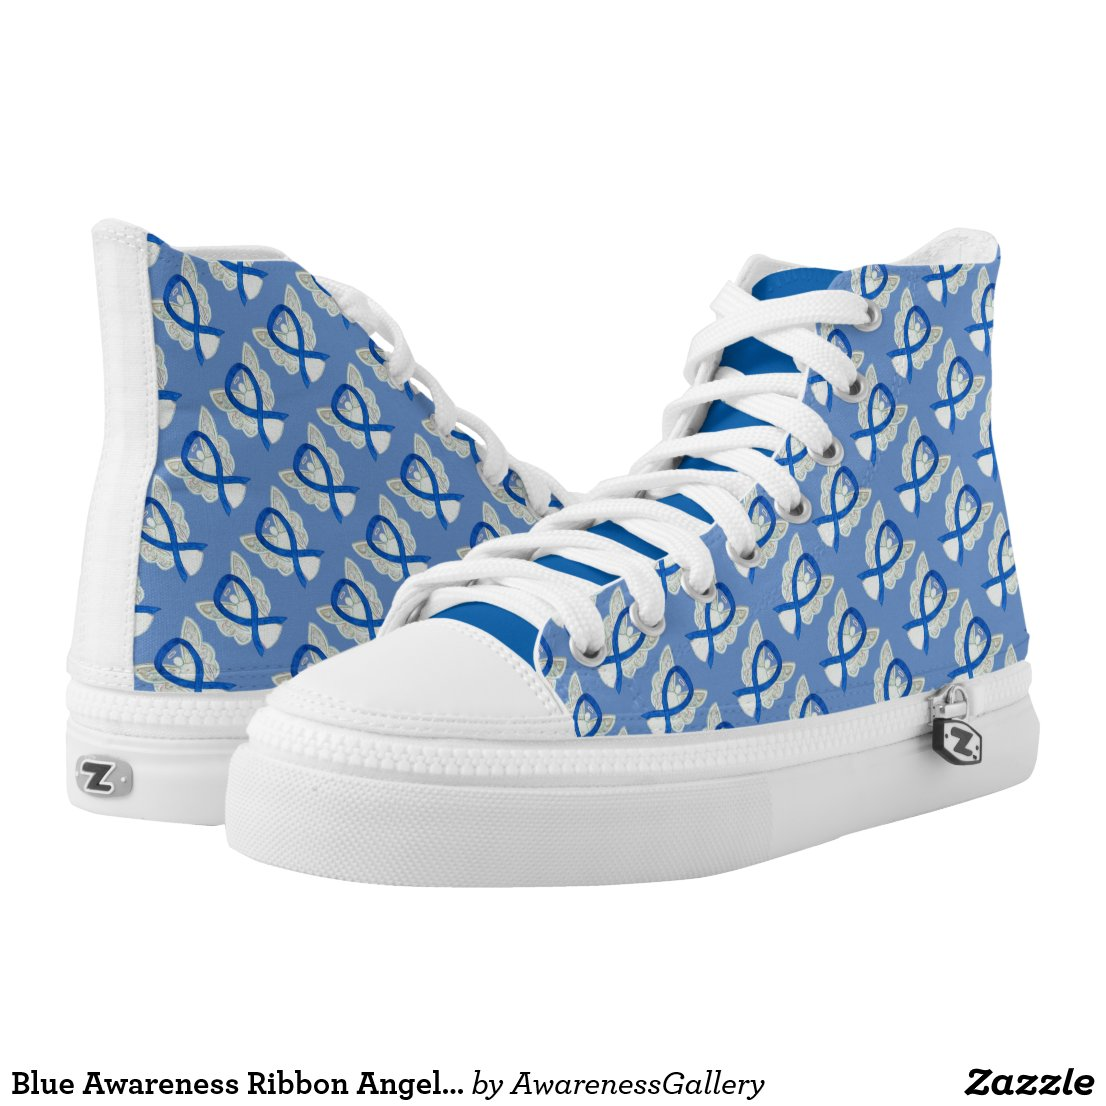 Blue Awareness Ribbon Angel Custom Sneakers